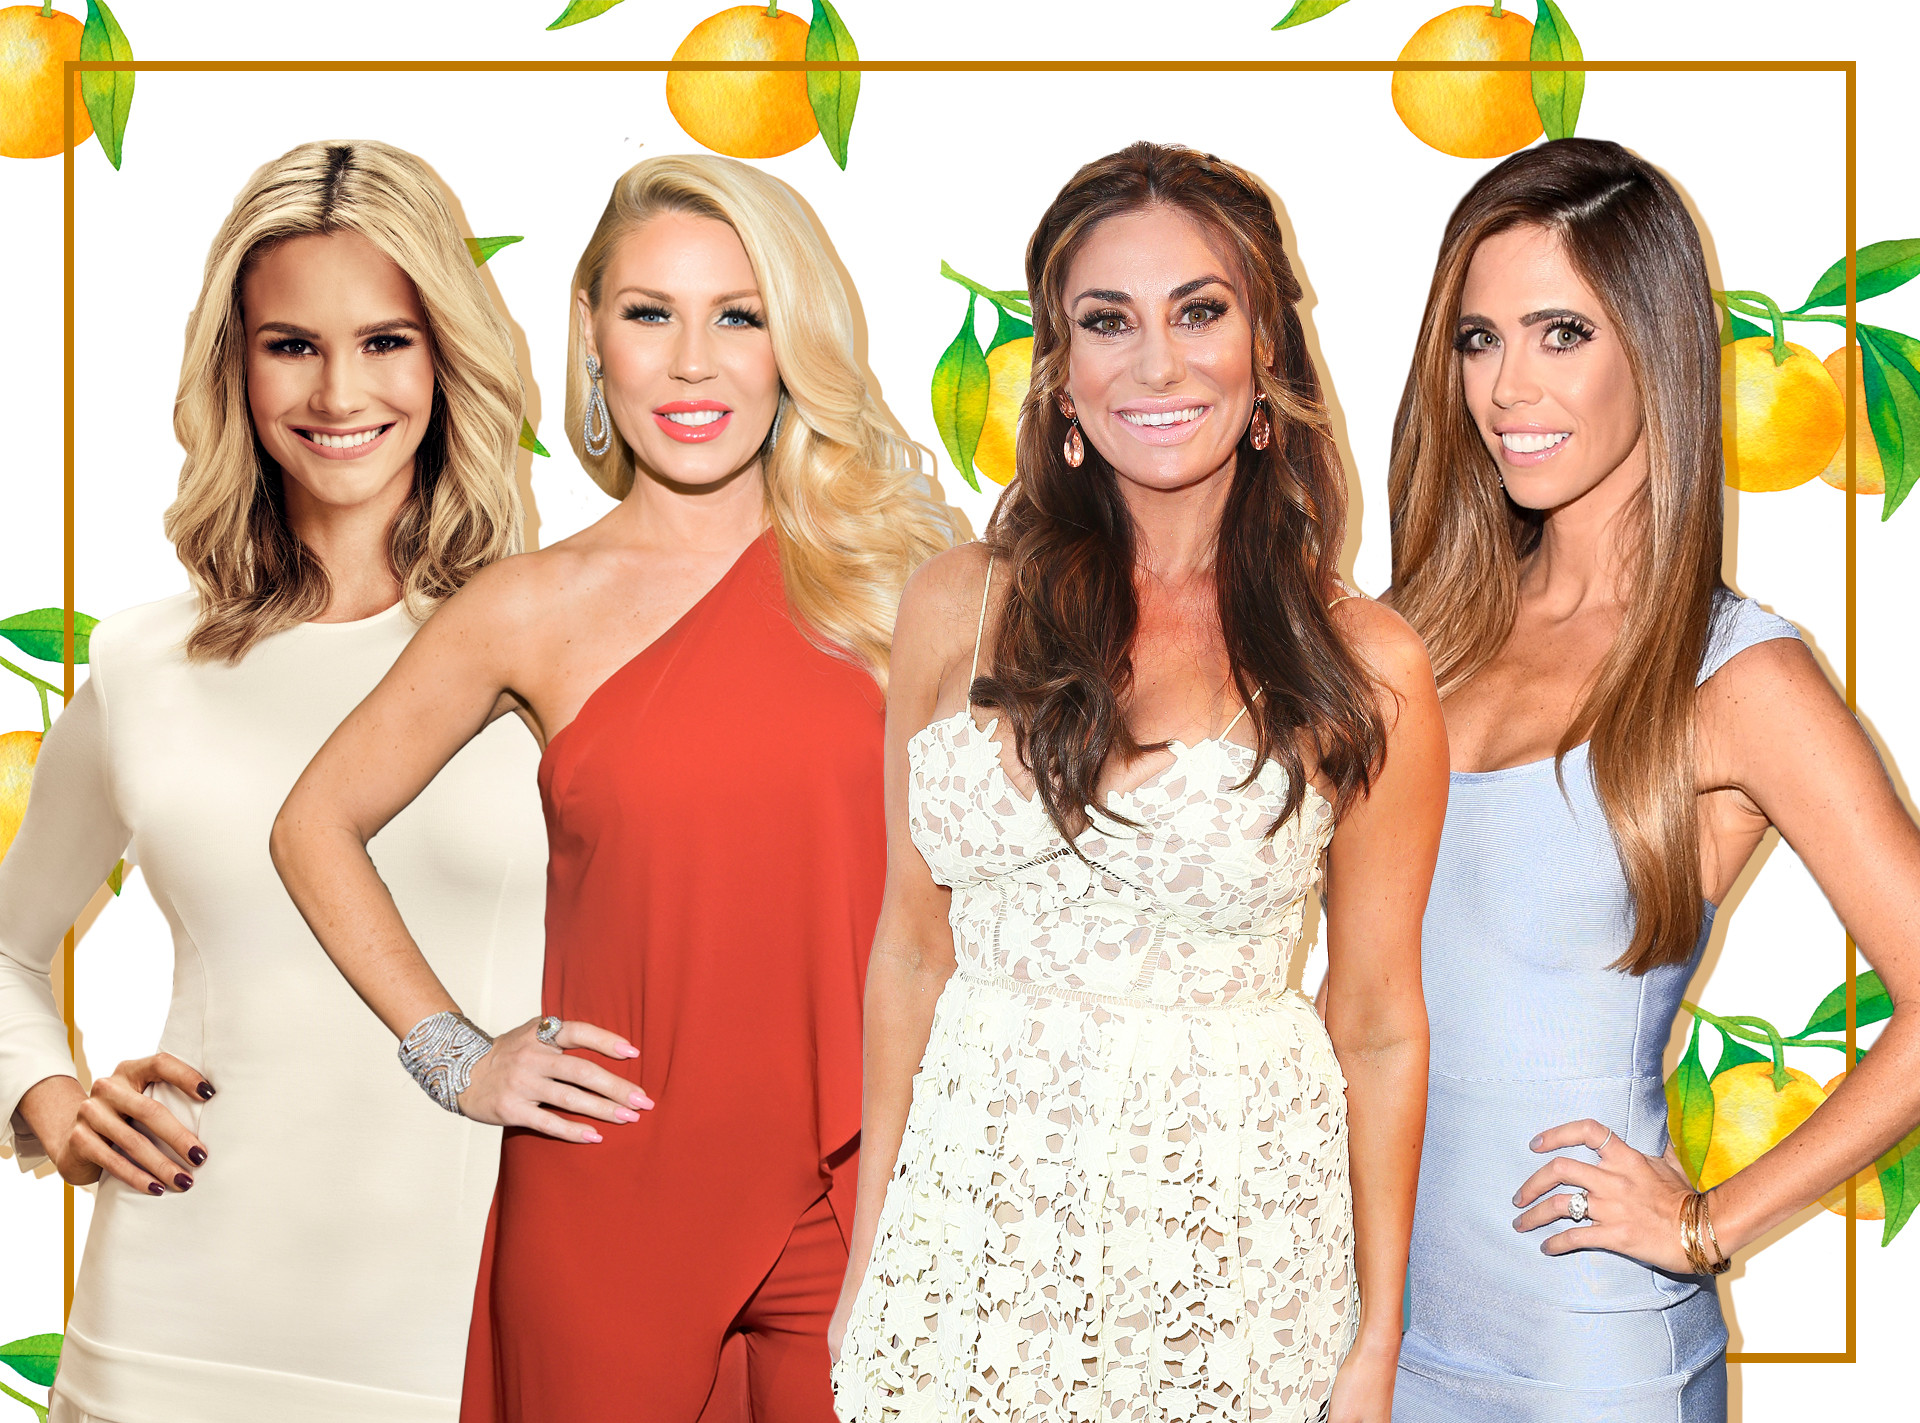 Real Housewives of Orange County, RHOC, Meghan King Edmonds, Gretchen Rossi, Lydia McLaughlin, Lizzie Rovsek